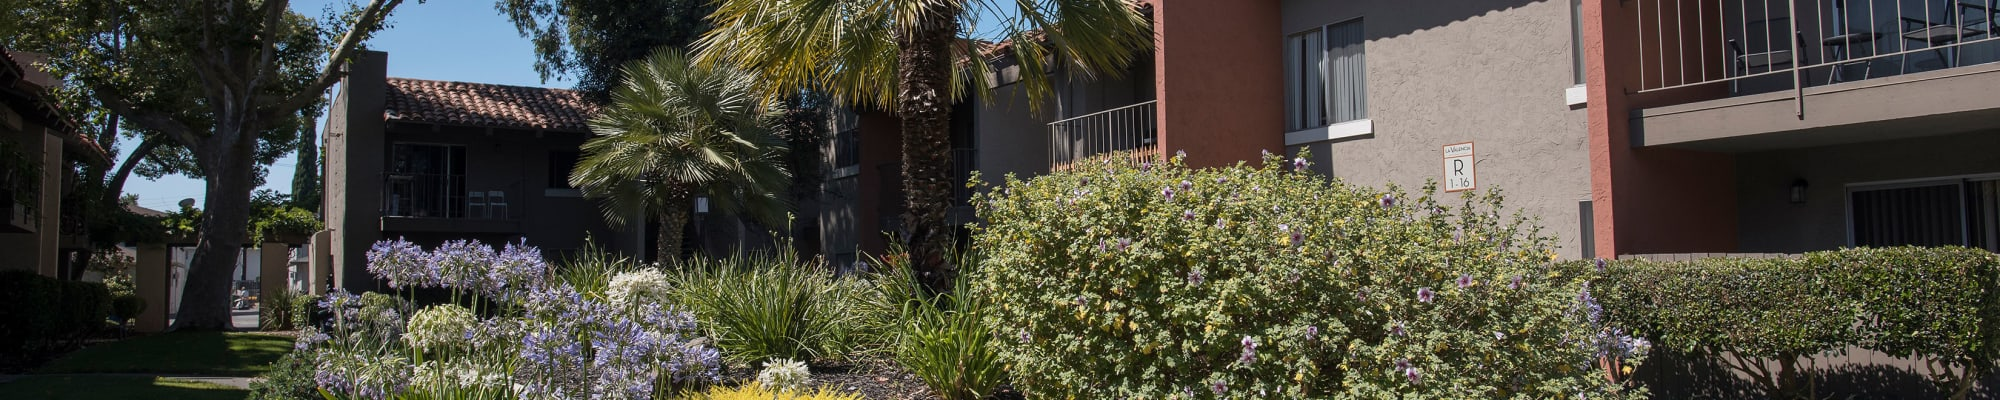 Photo gallery at La Valencia Apartment Homes in Campbell, California